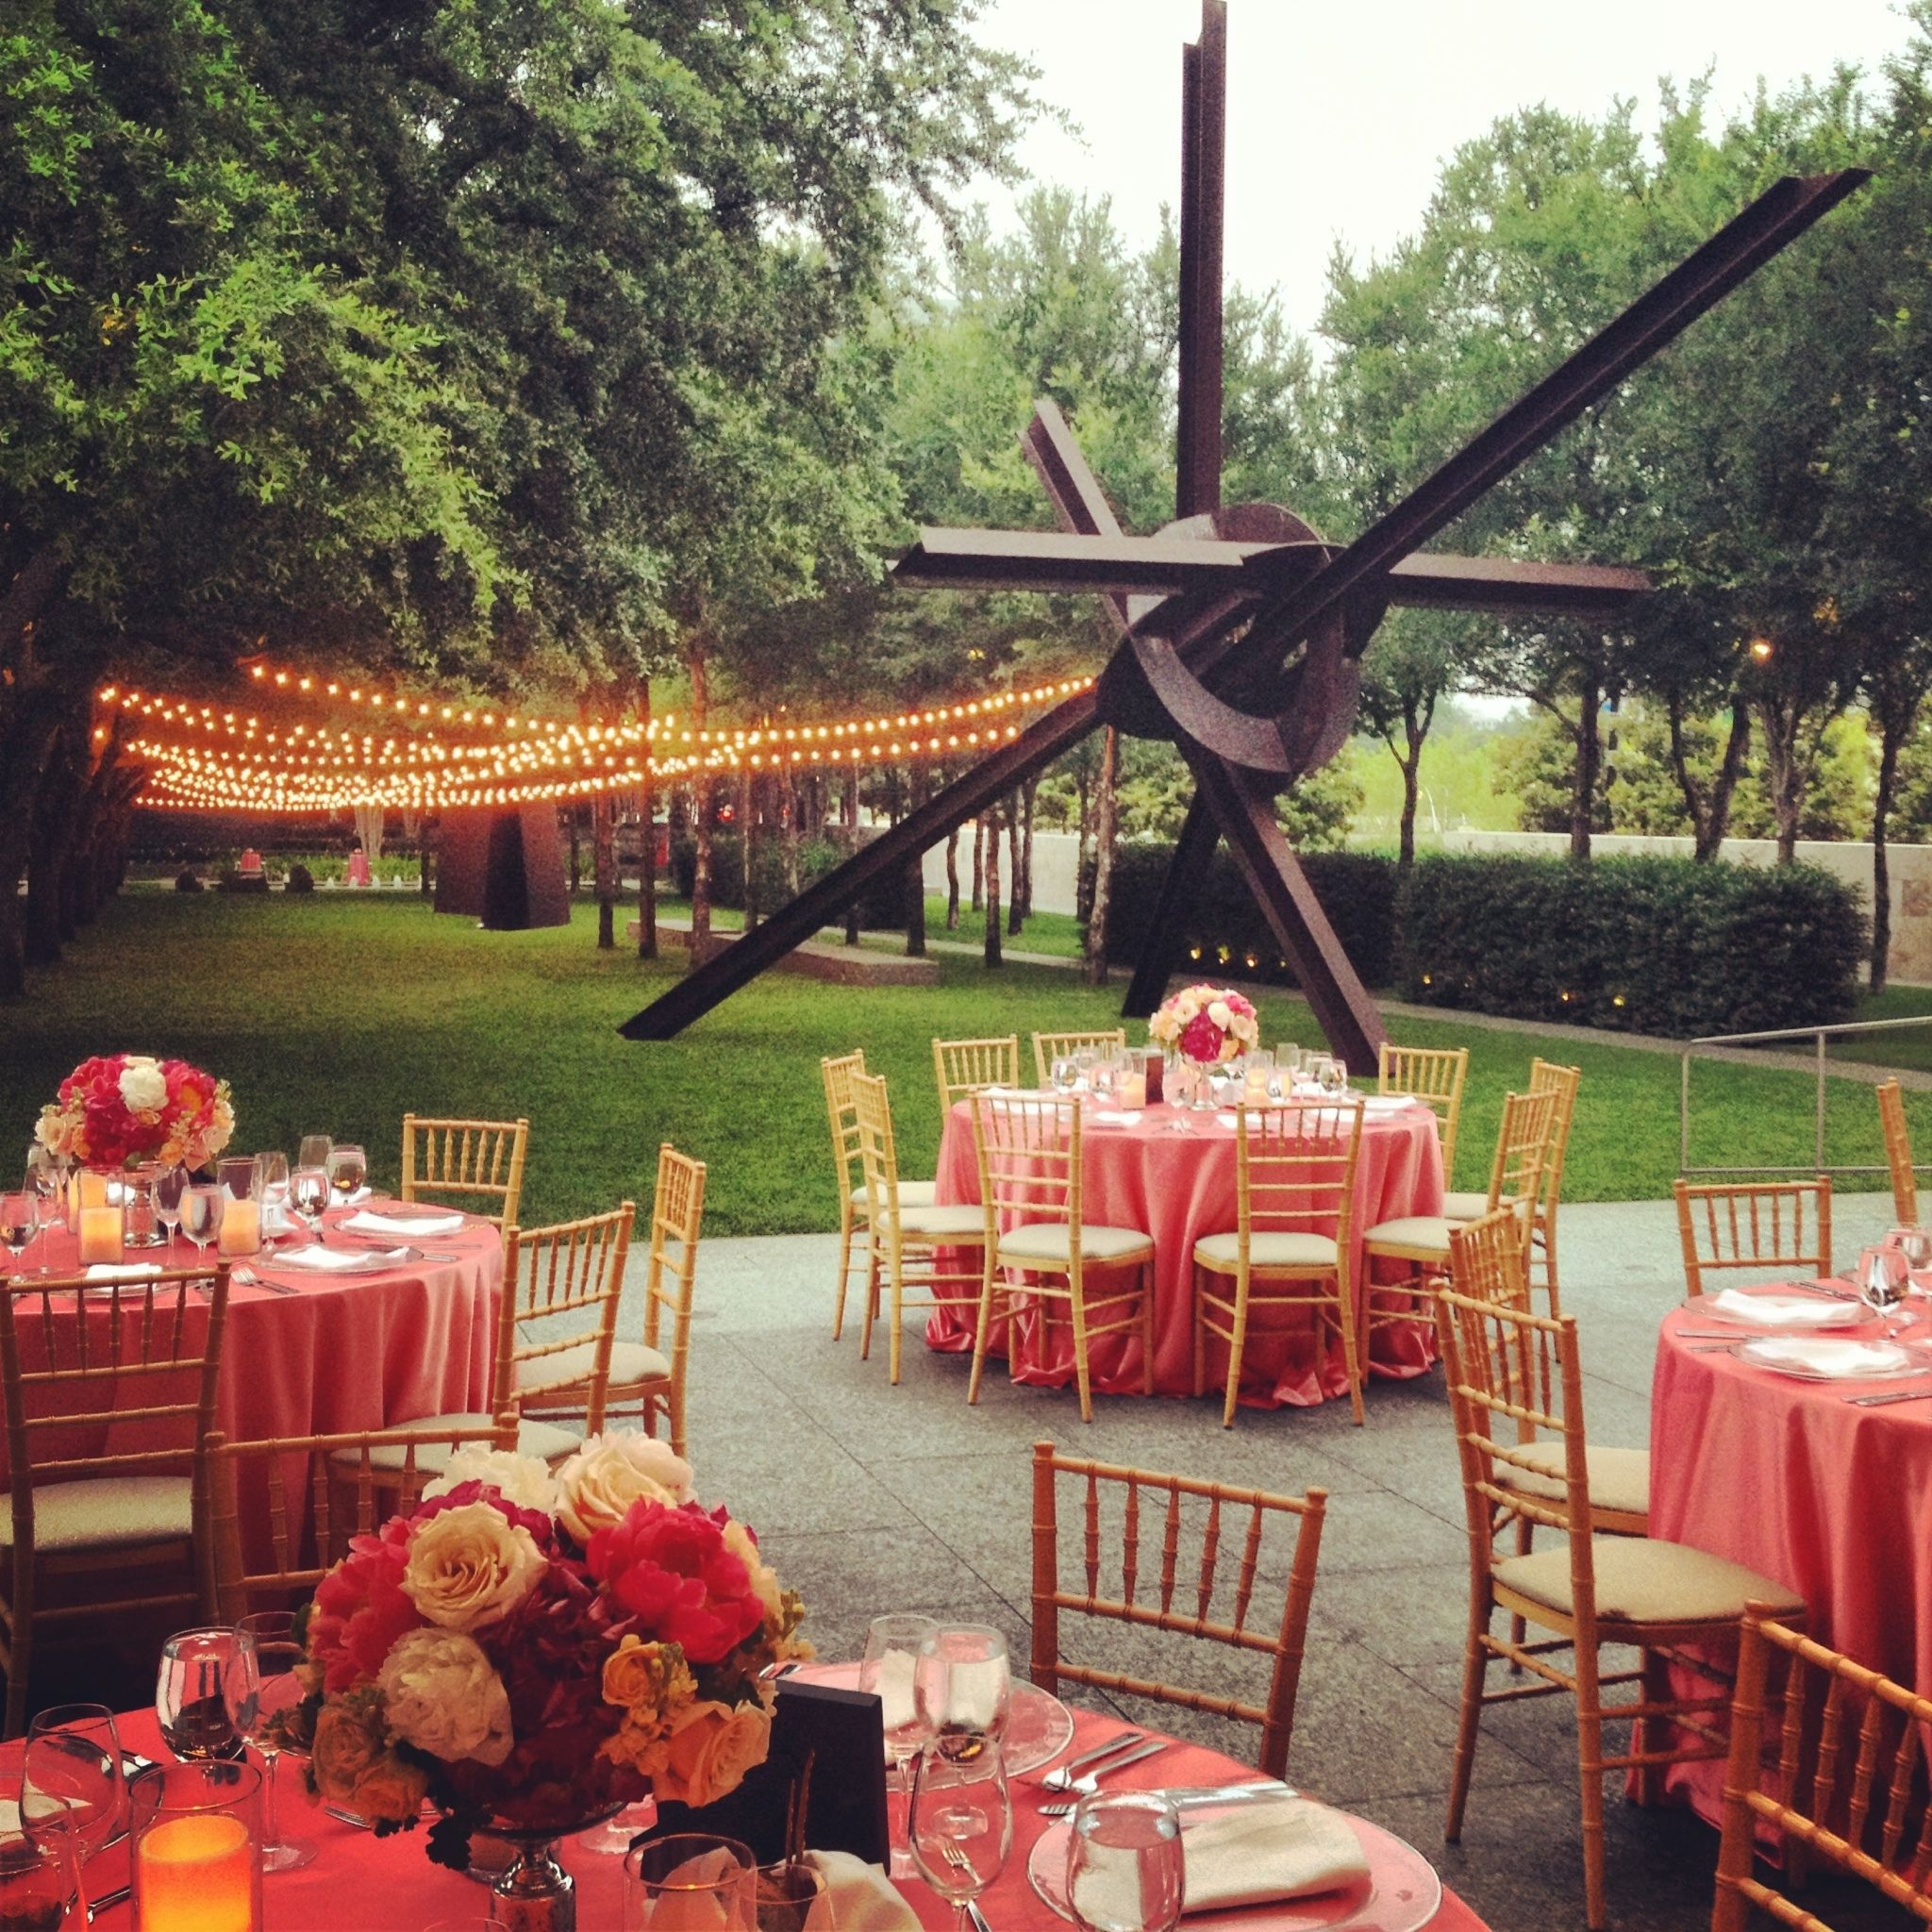 outdoor wedding venues in fort worth tx%0A Pink table settings at outdoor wedding at the Nasher Sculpture Center in  Dallas  Texas